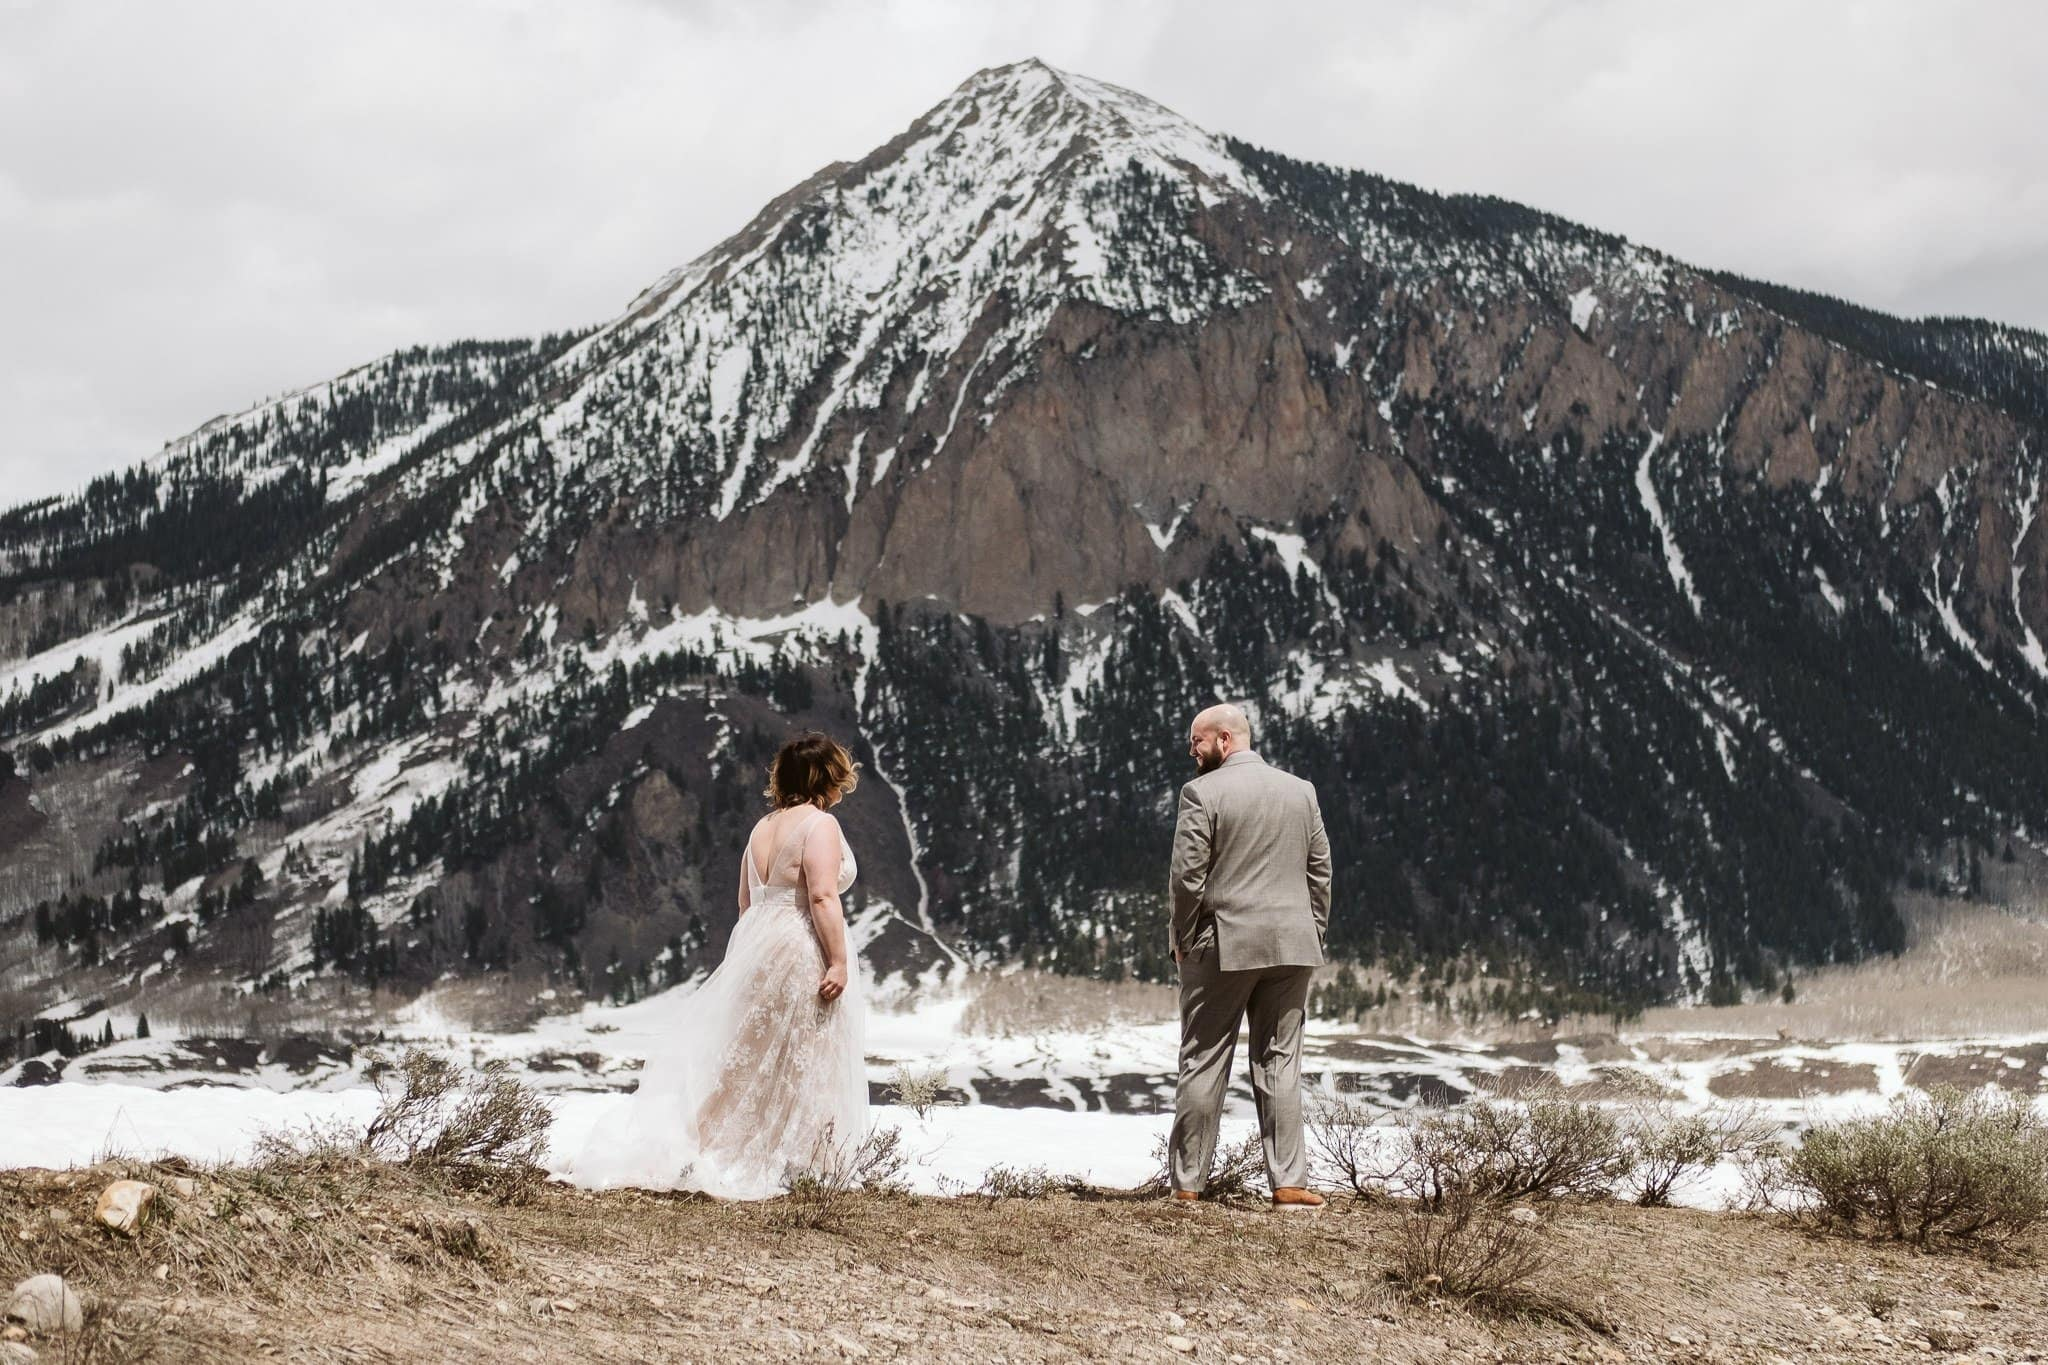 Bride and groom first look with Mount Crested Butte in the background, winter elopement in Colorado